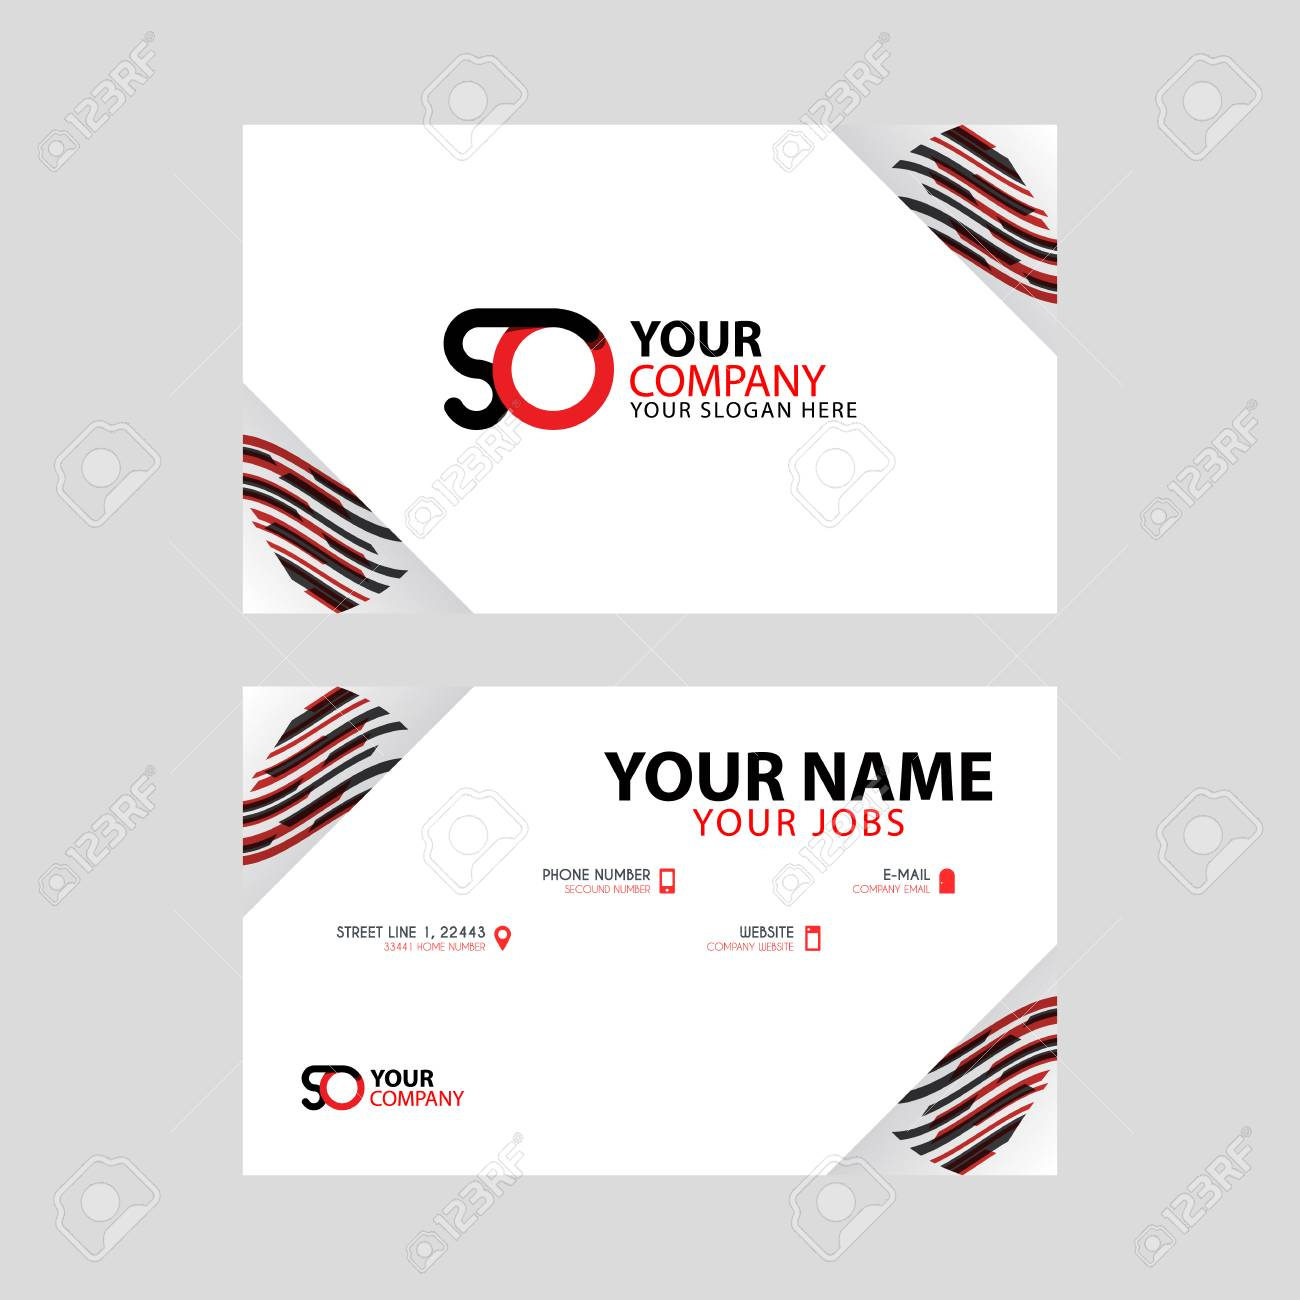 Horizontal name card with decorative accents on the edge and bonus SO logo in black and red. - 106168709